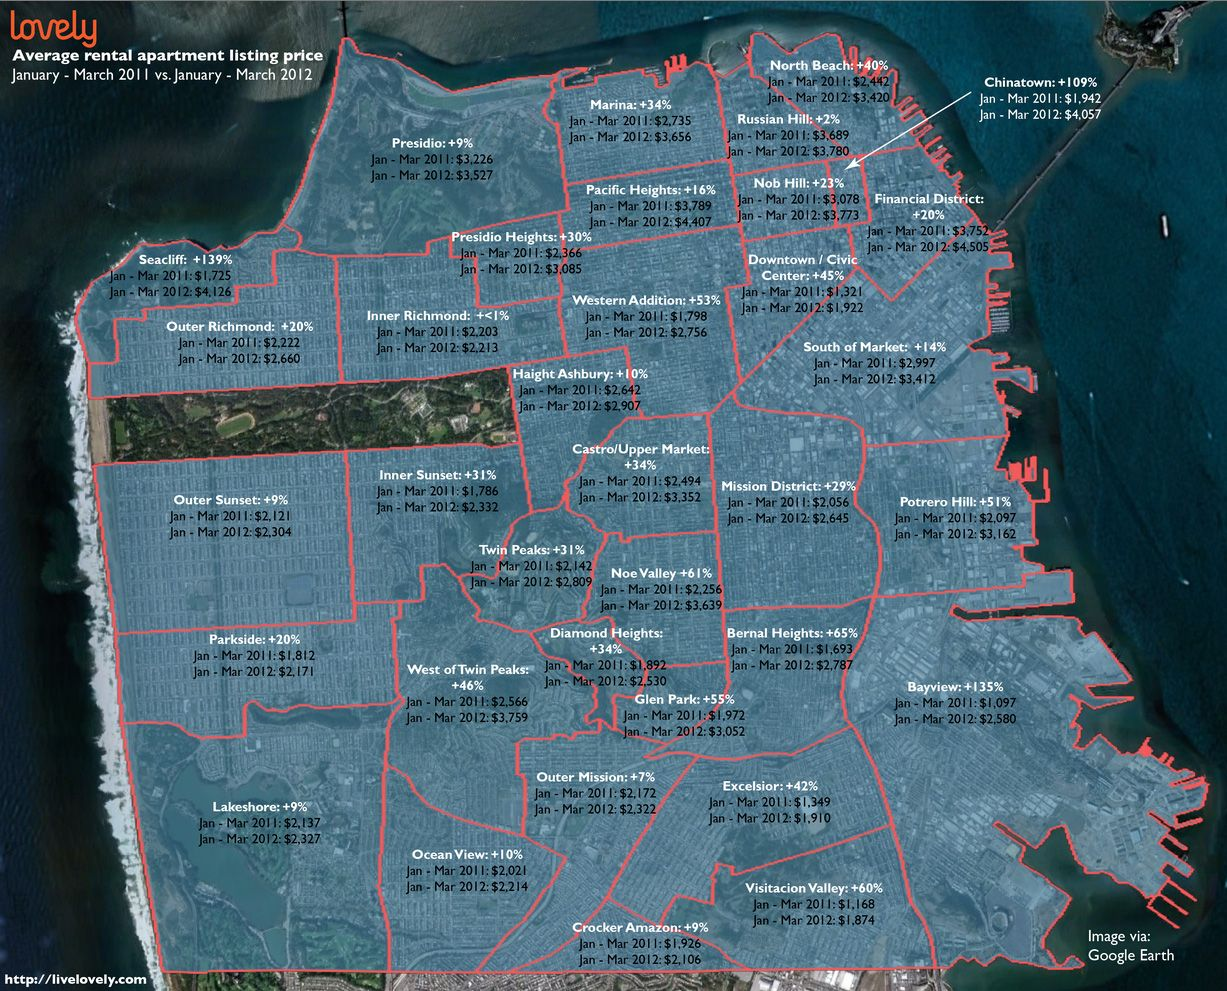 San Francisco Fog Map Live%0A The Bad News  As Suspected  Rental Rates Have Increased Dramatically Over  the Past Year  Sf